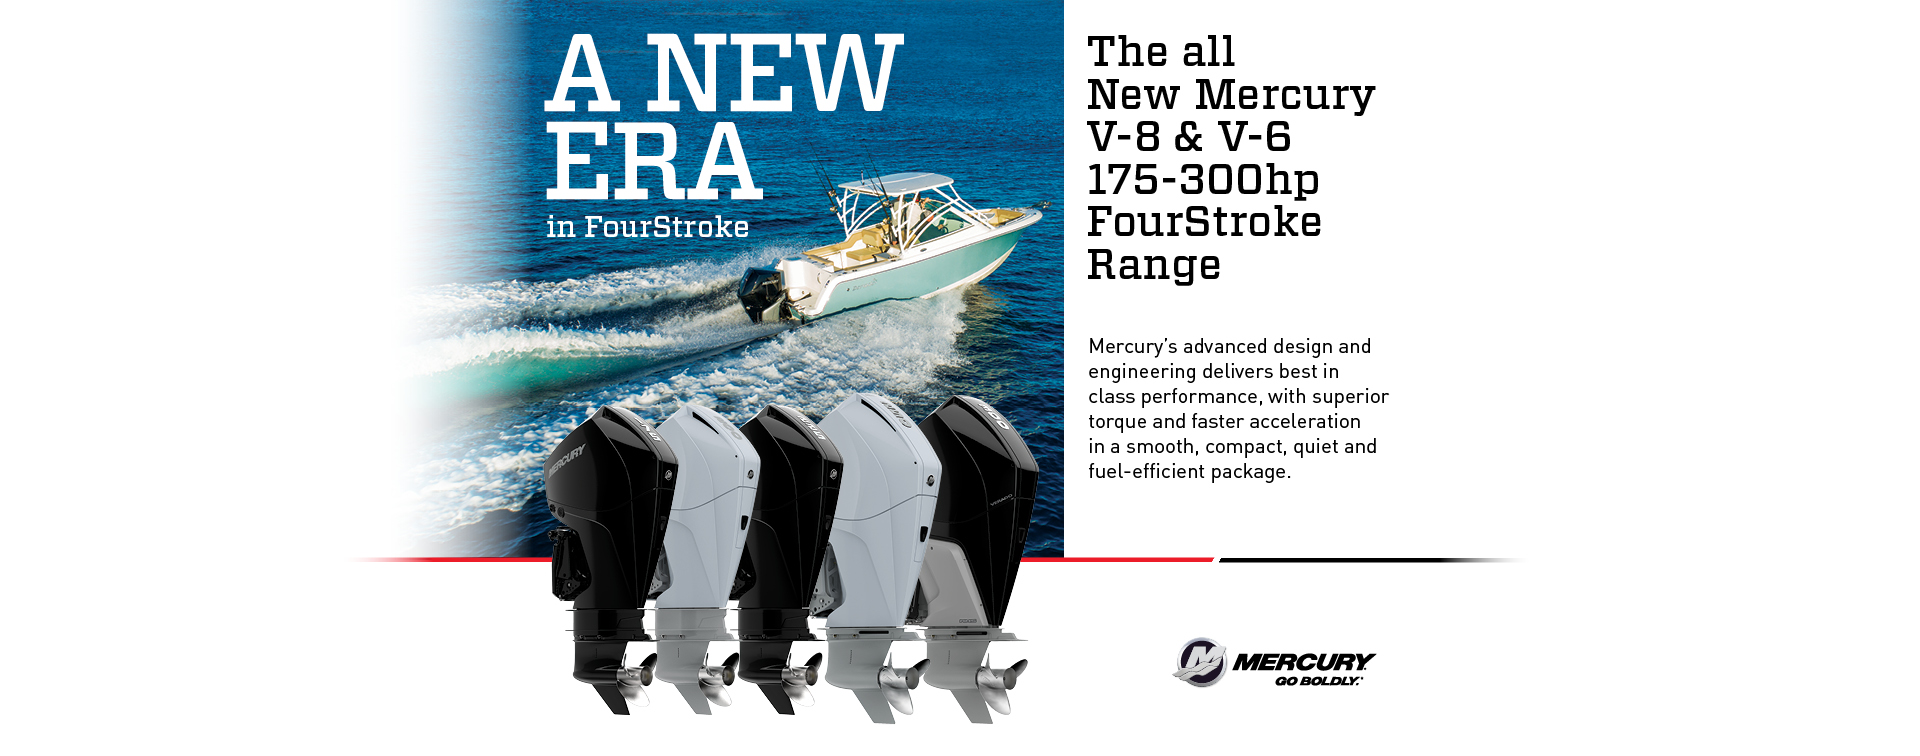 Stacer Boats, Mercury Outboards Engines Service Centre